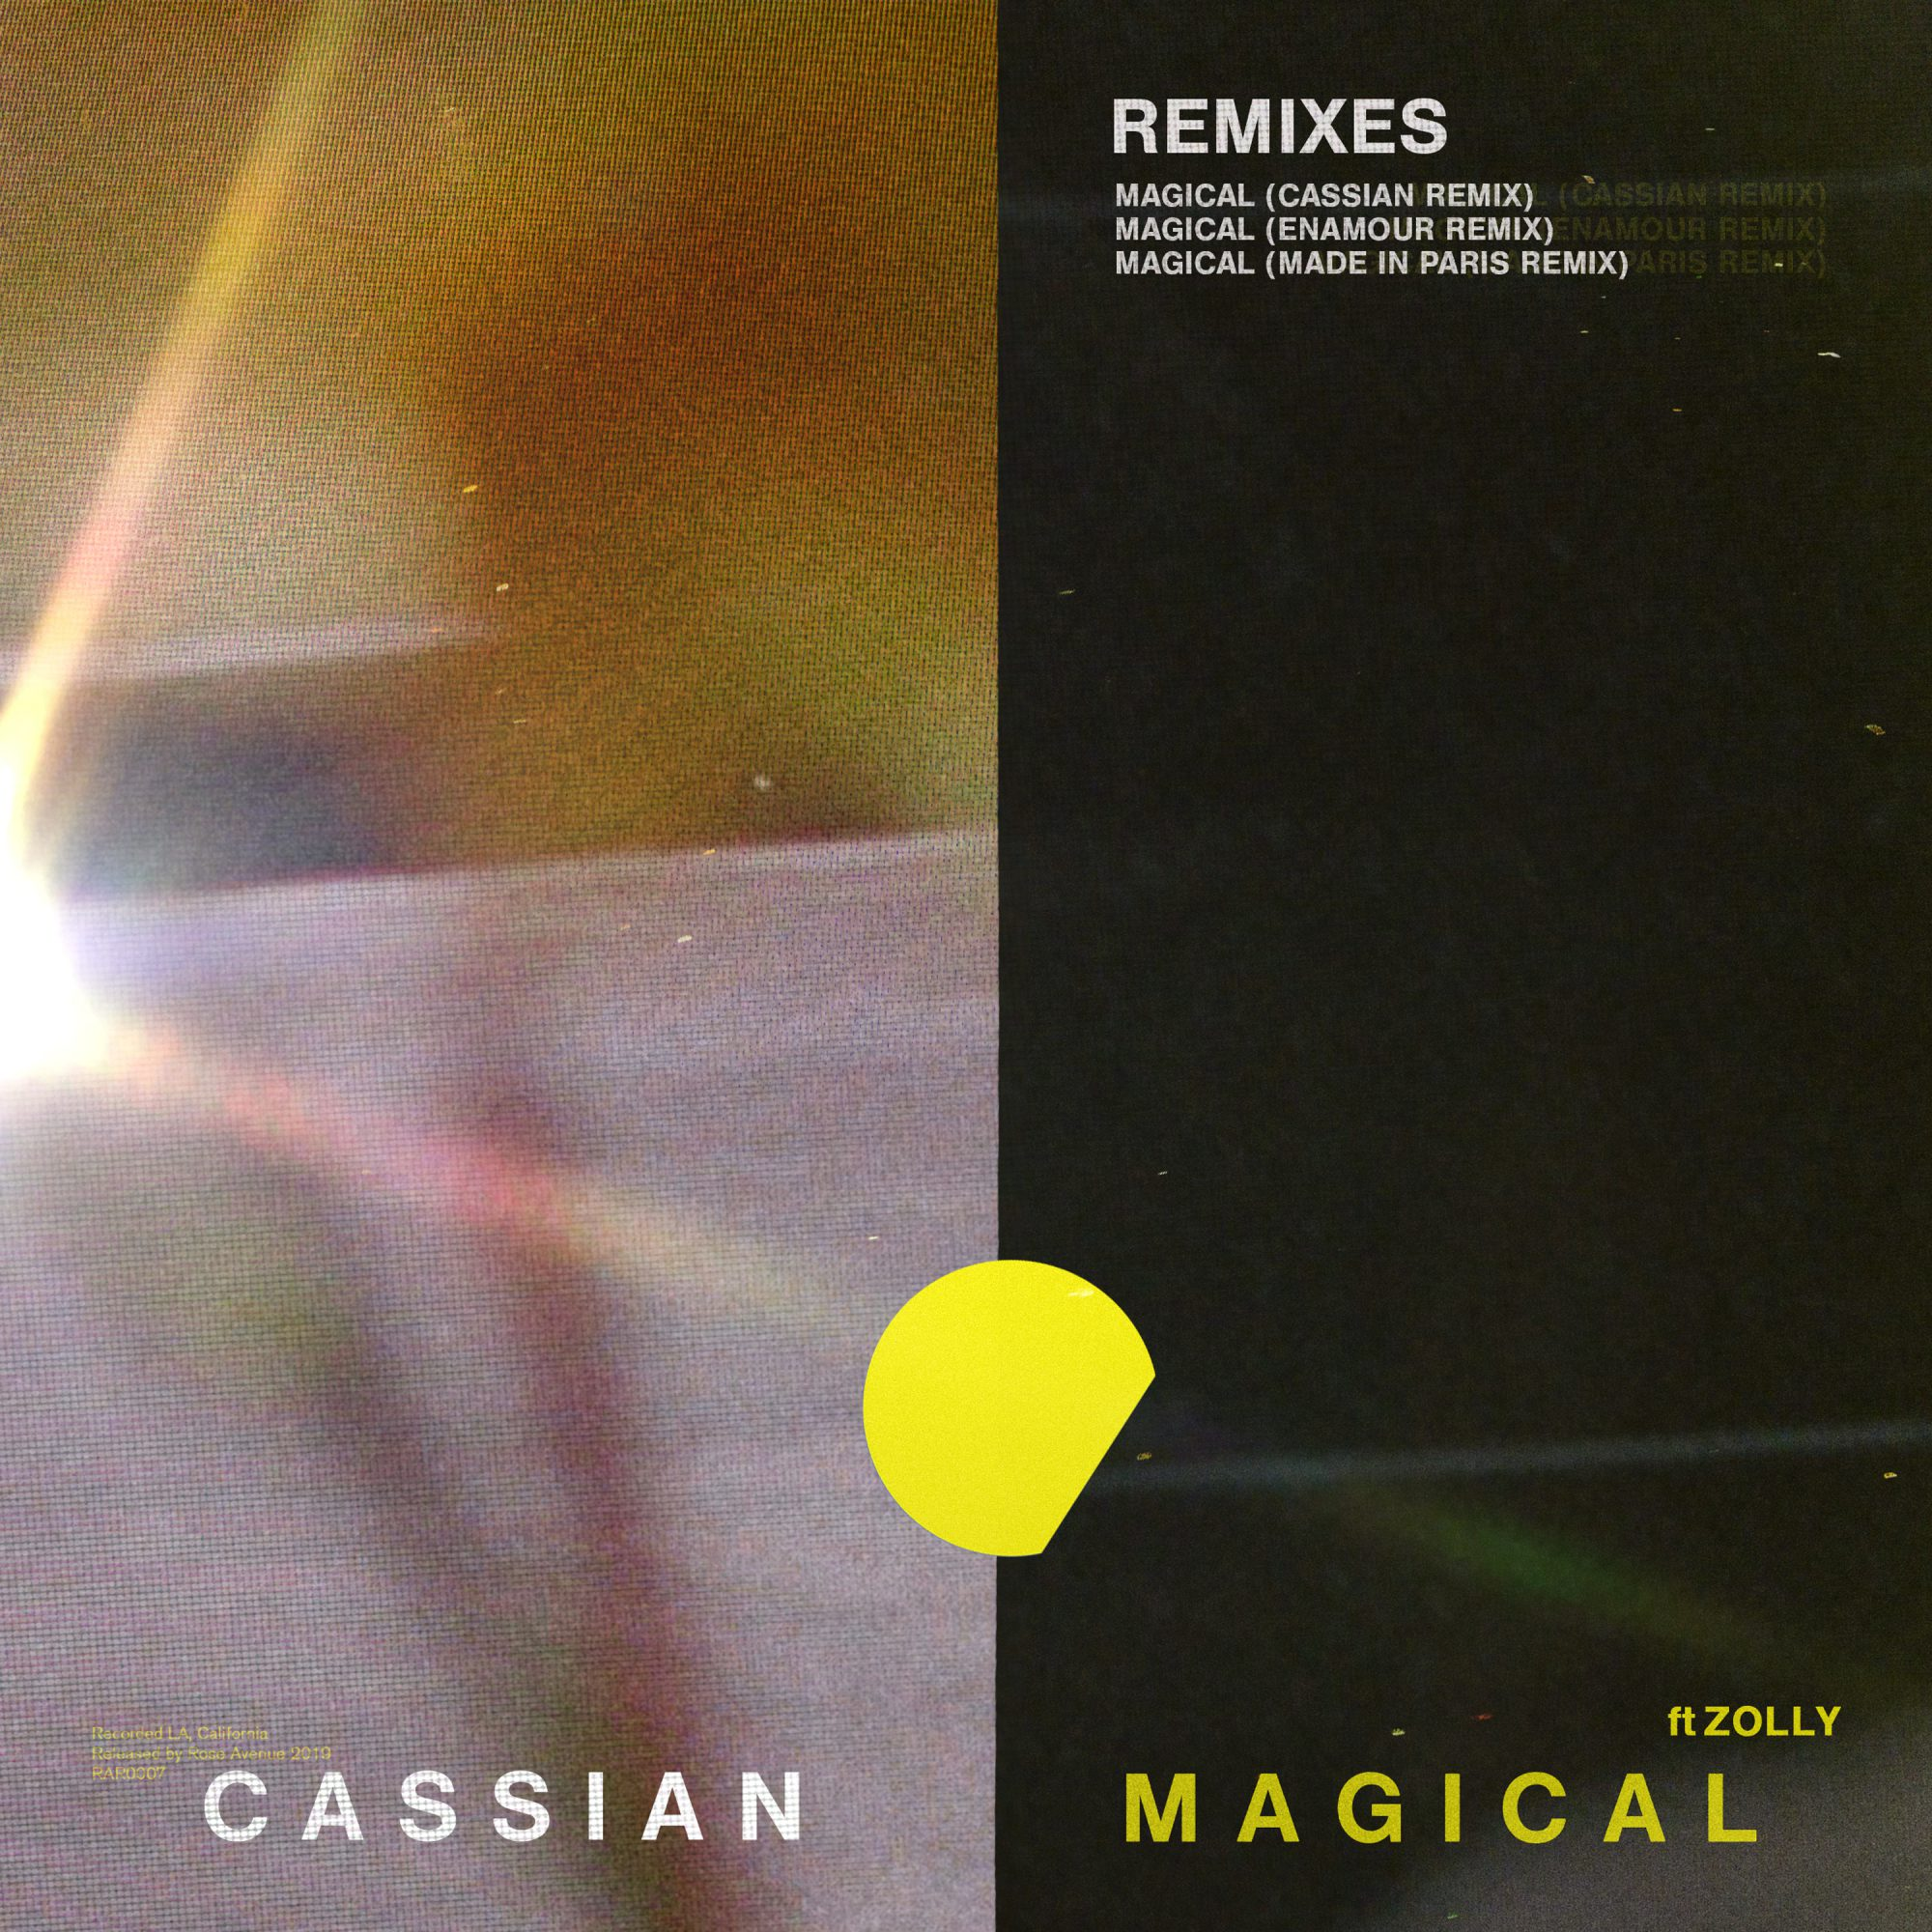 Cassian Magical Remixes Art